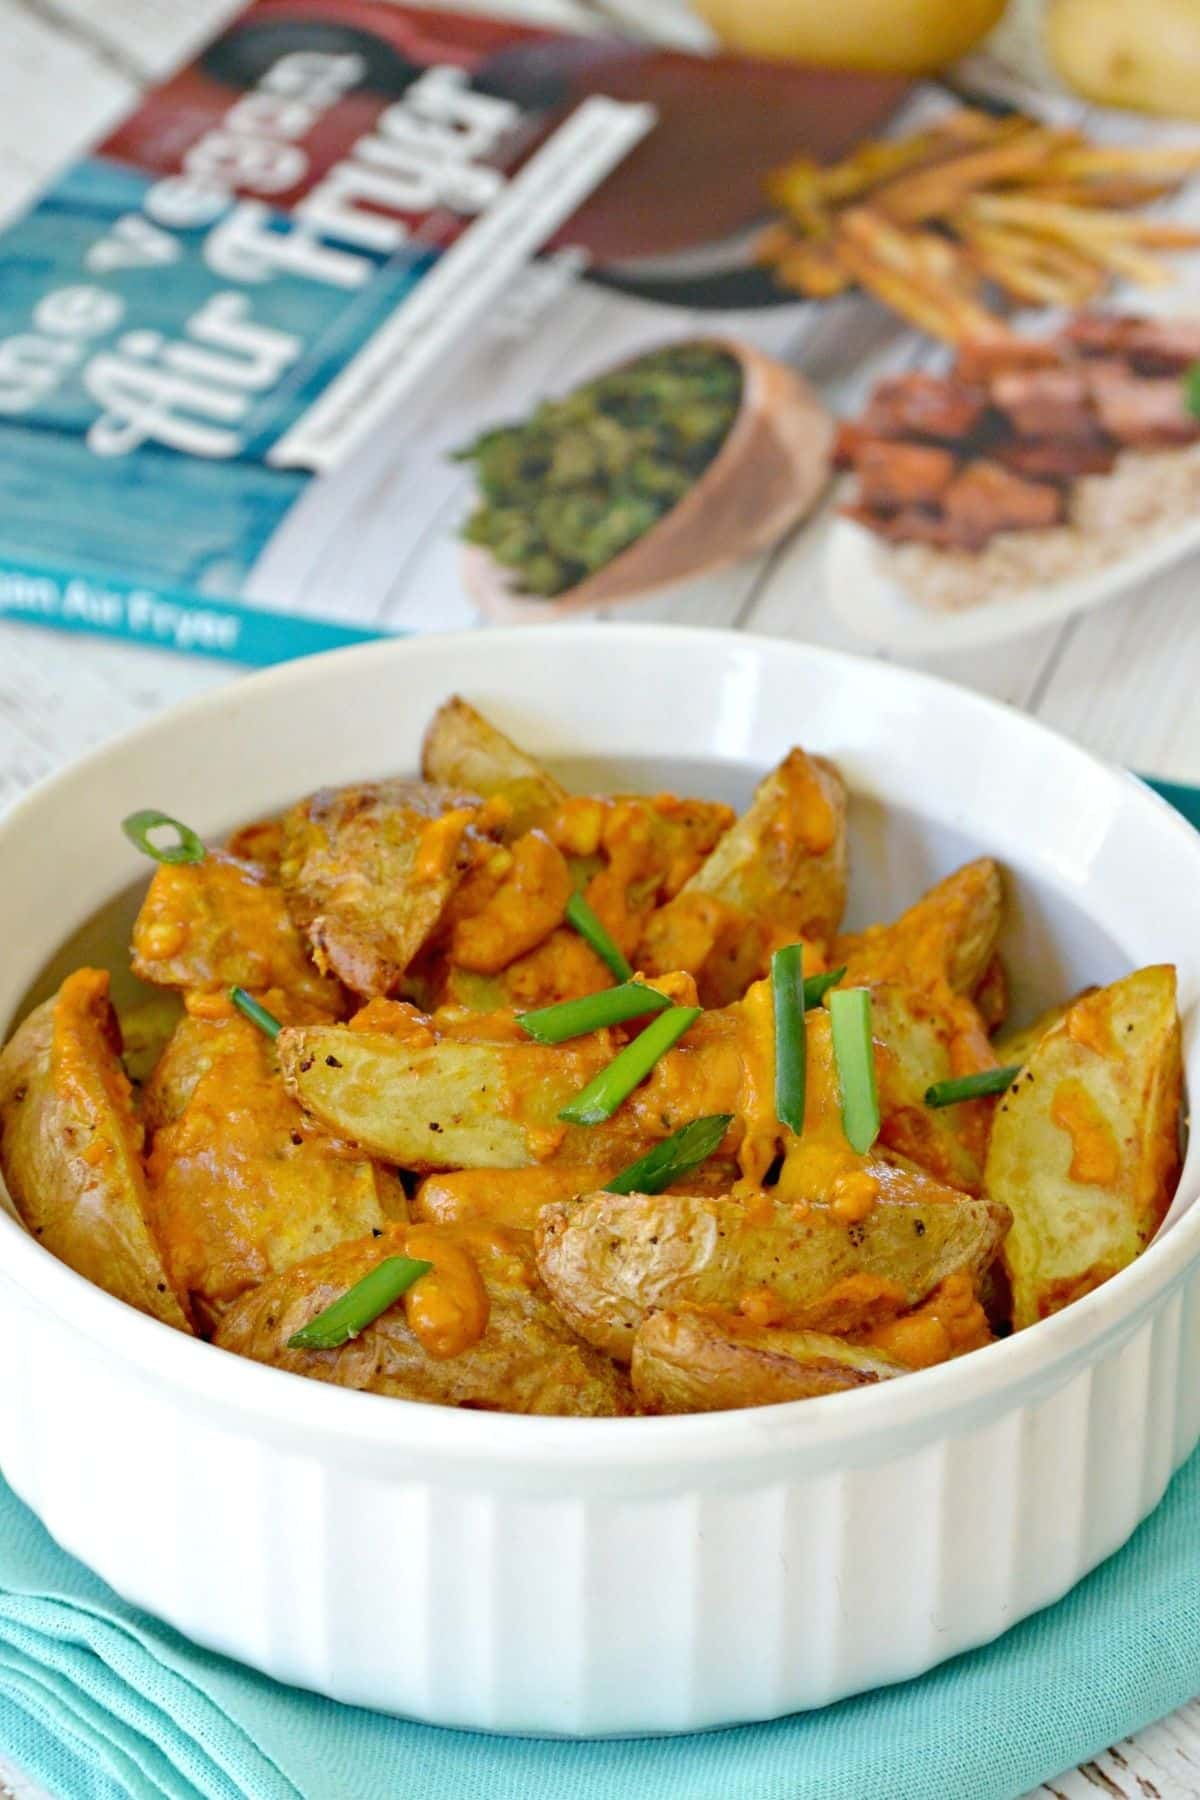 Bowl of wedges topped with sauce and chives with a cookbook in the background